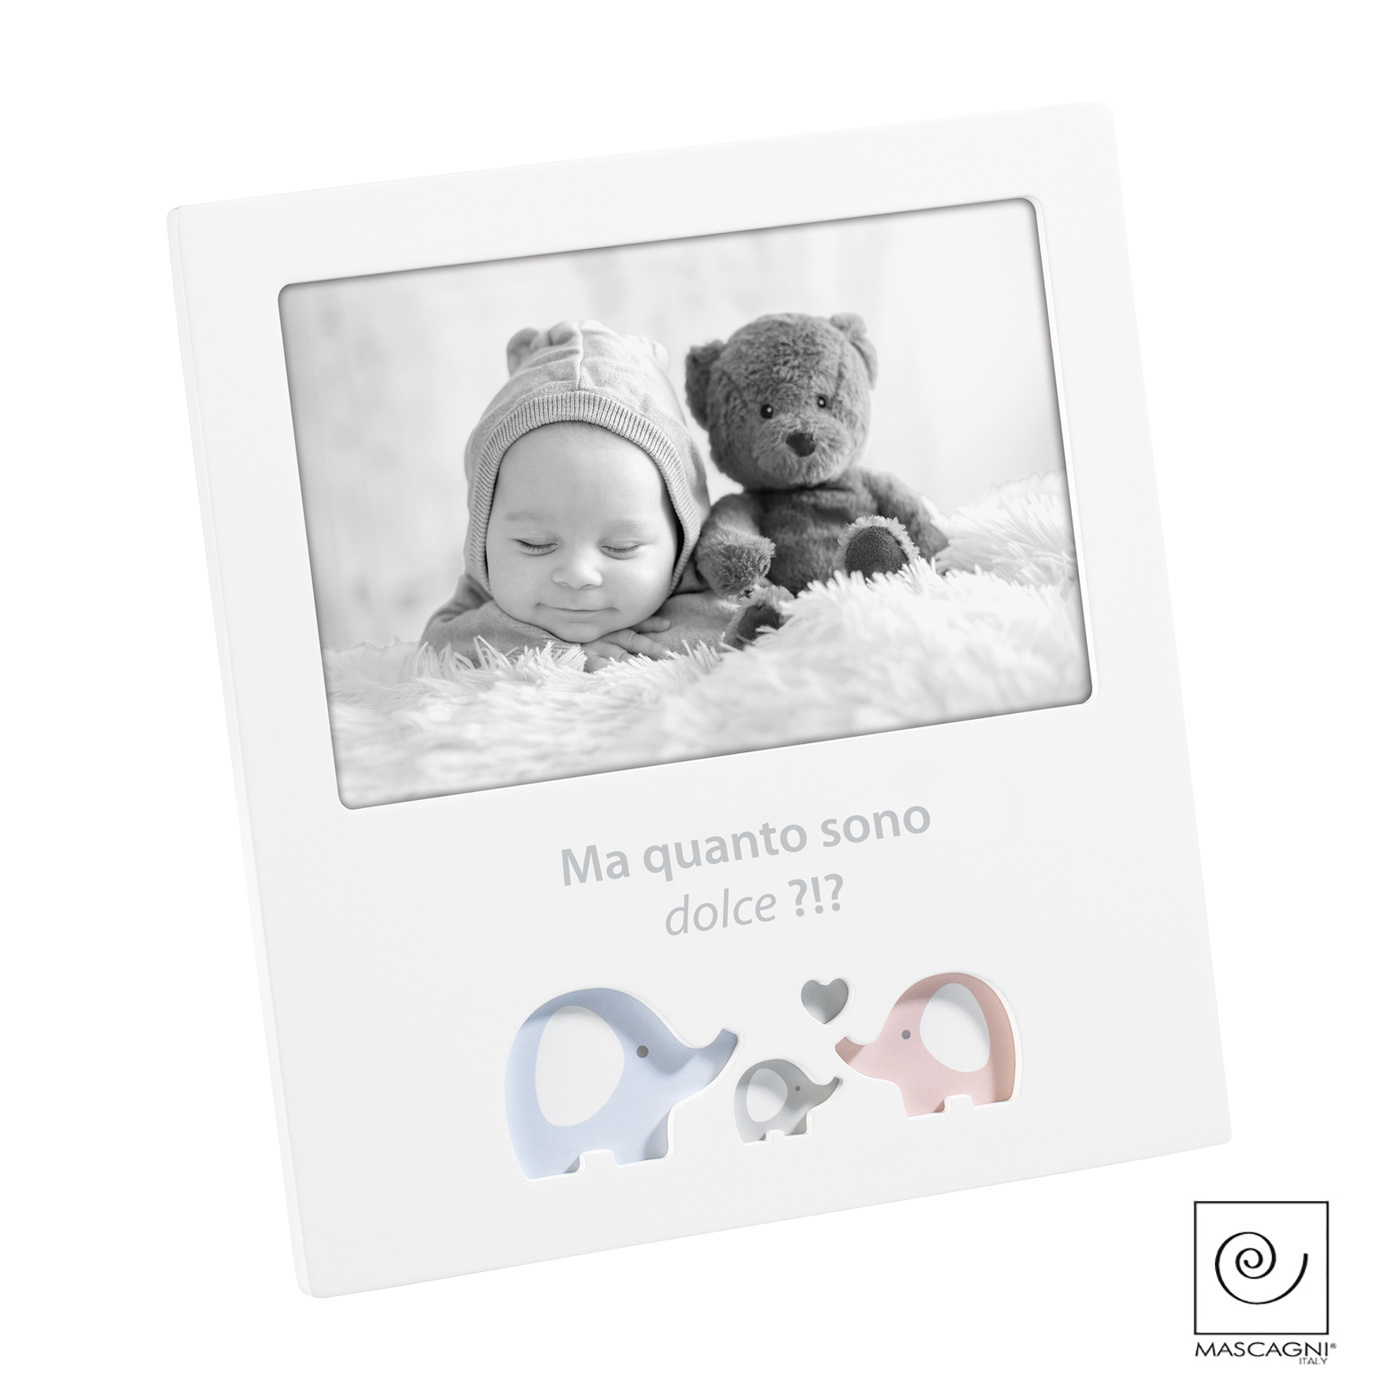 Art Mascagni A1064 PHOTO FRAME 10X15